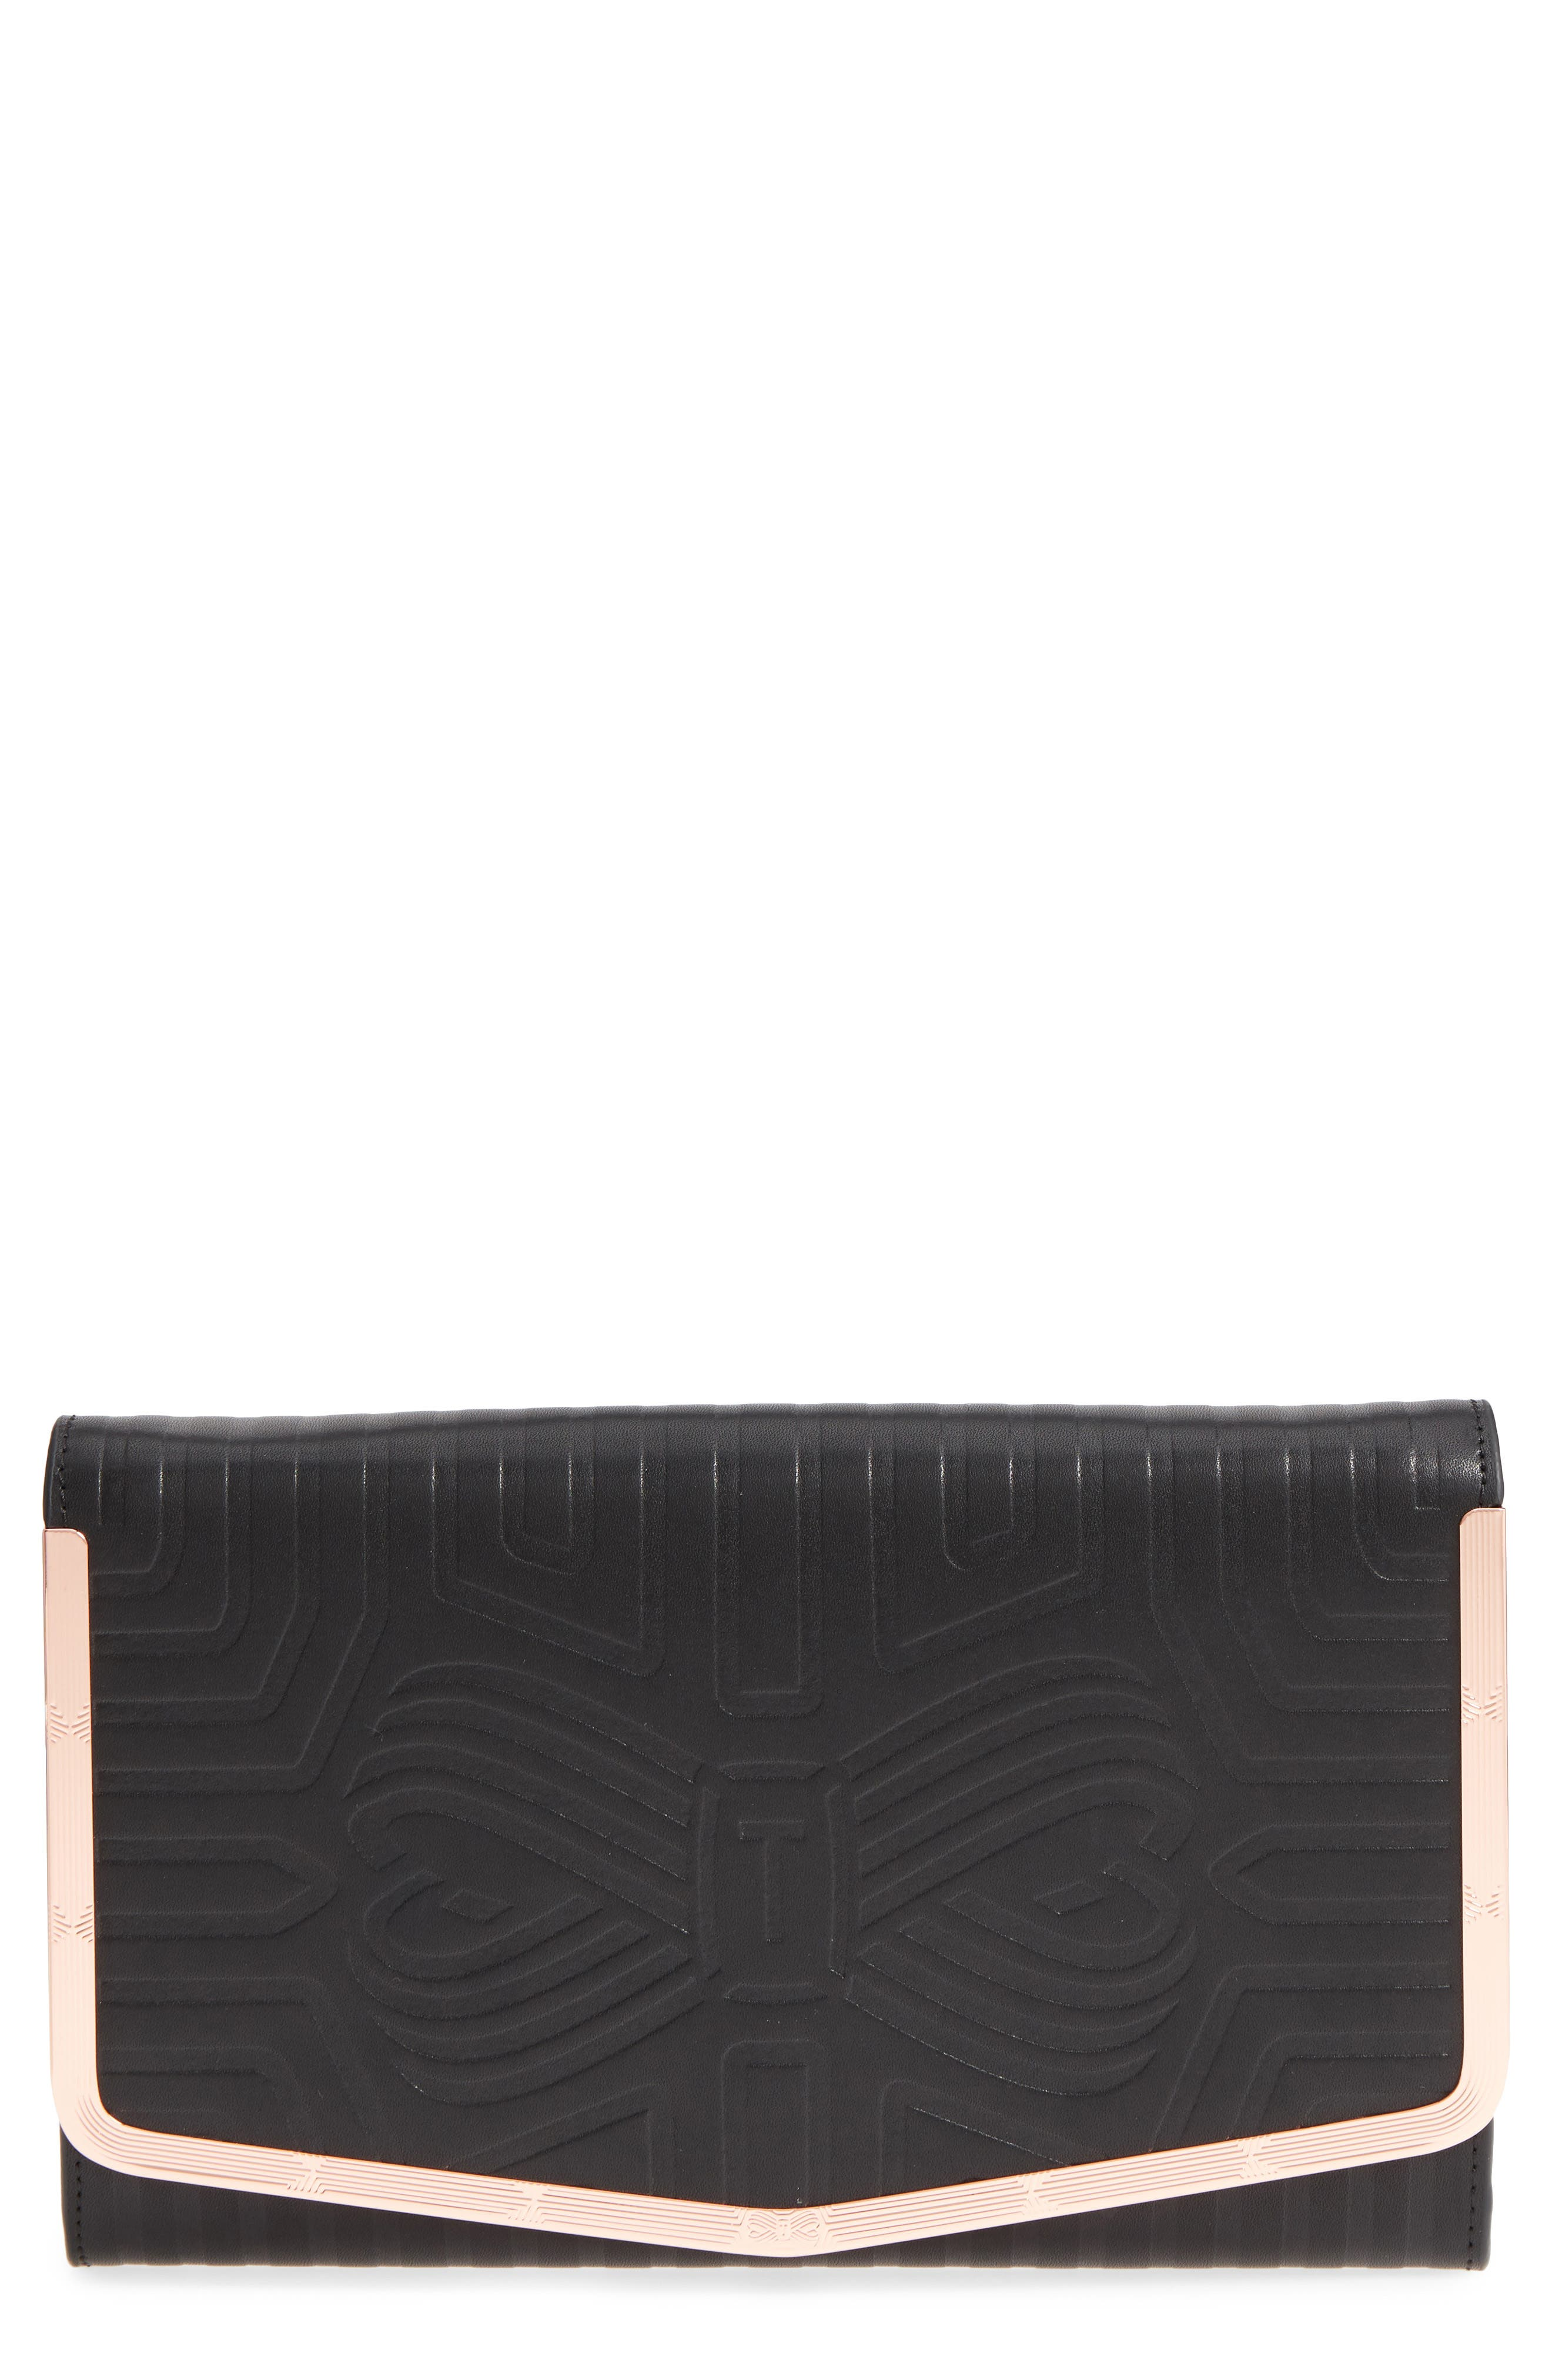 Jenaa Embossed Bow Leather Clutch,                         Main,                         color,